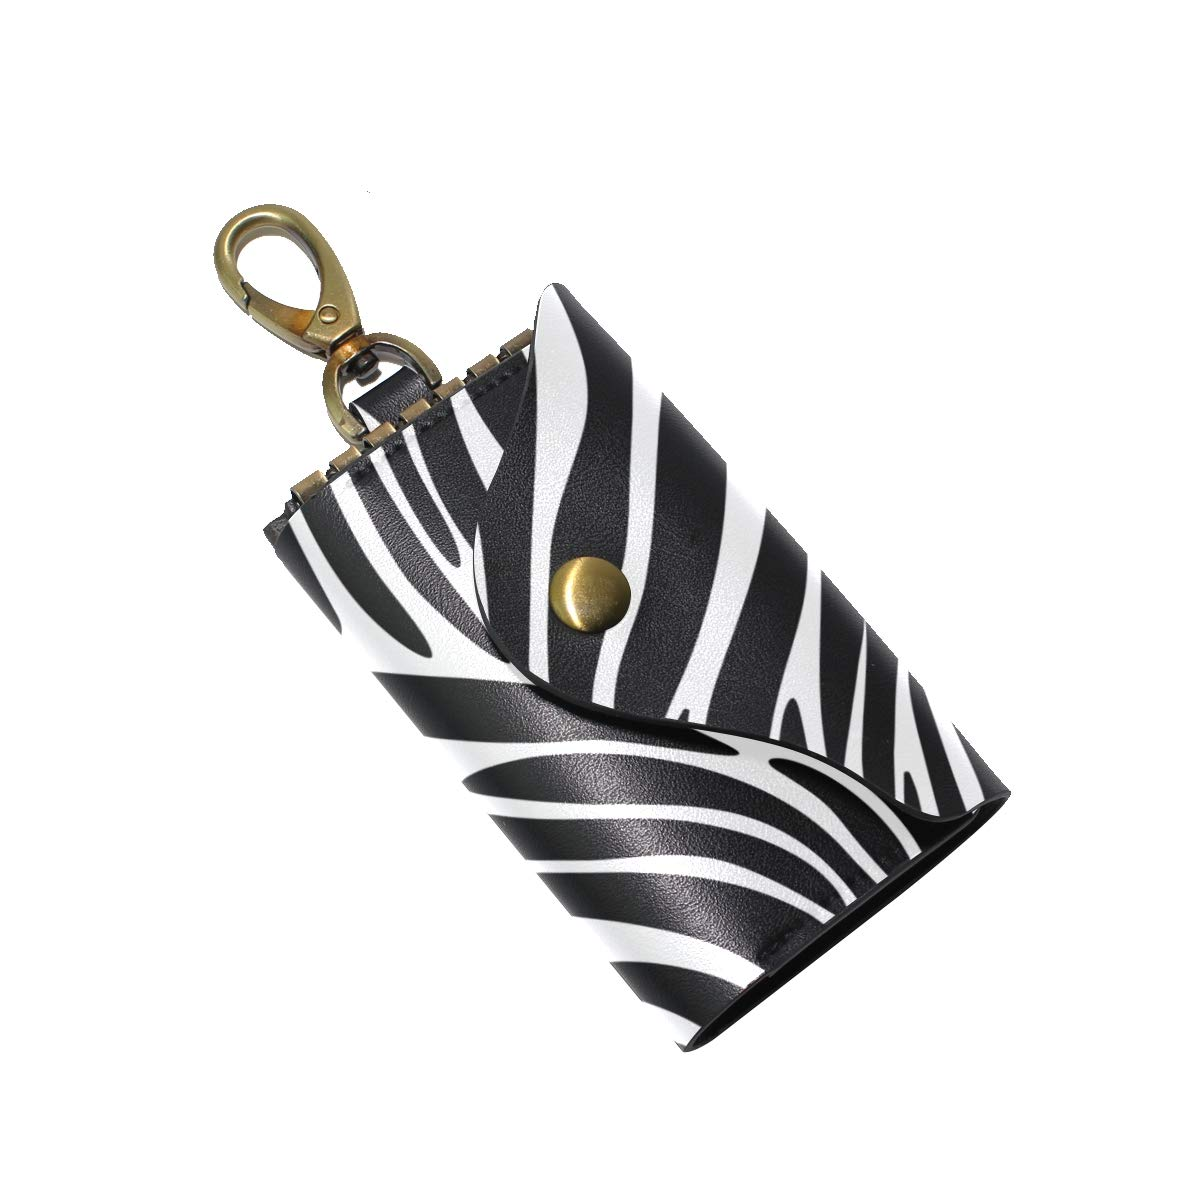 KEAKIA Zebra Textures Leather Key Case Wallets Tri-fold Key Holder Keychains with 6 Hooks 2 Slot Snap Closure for Men Women